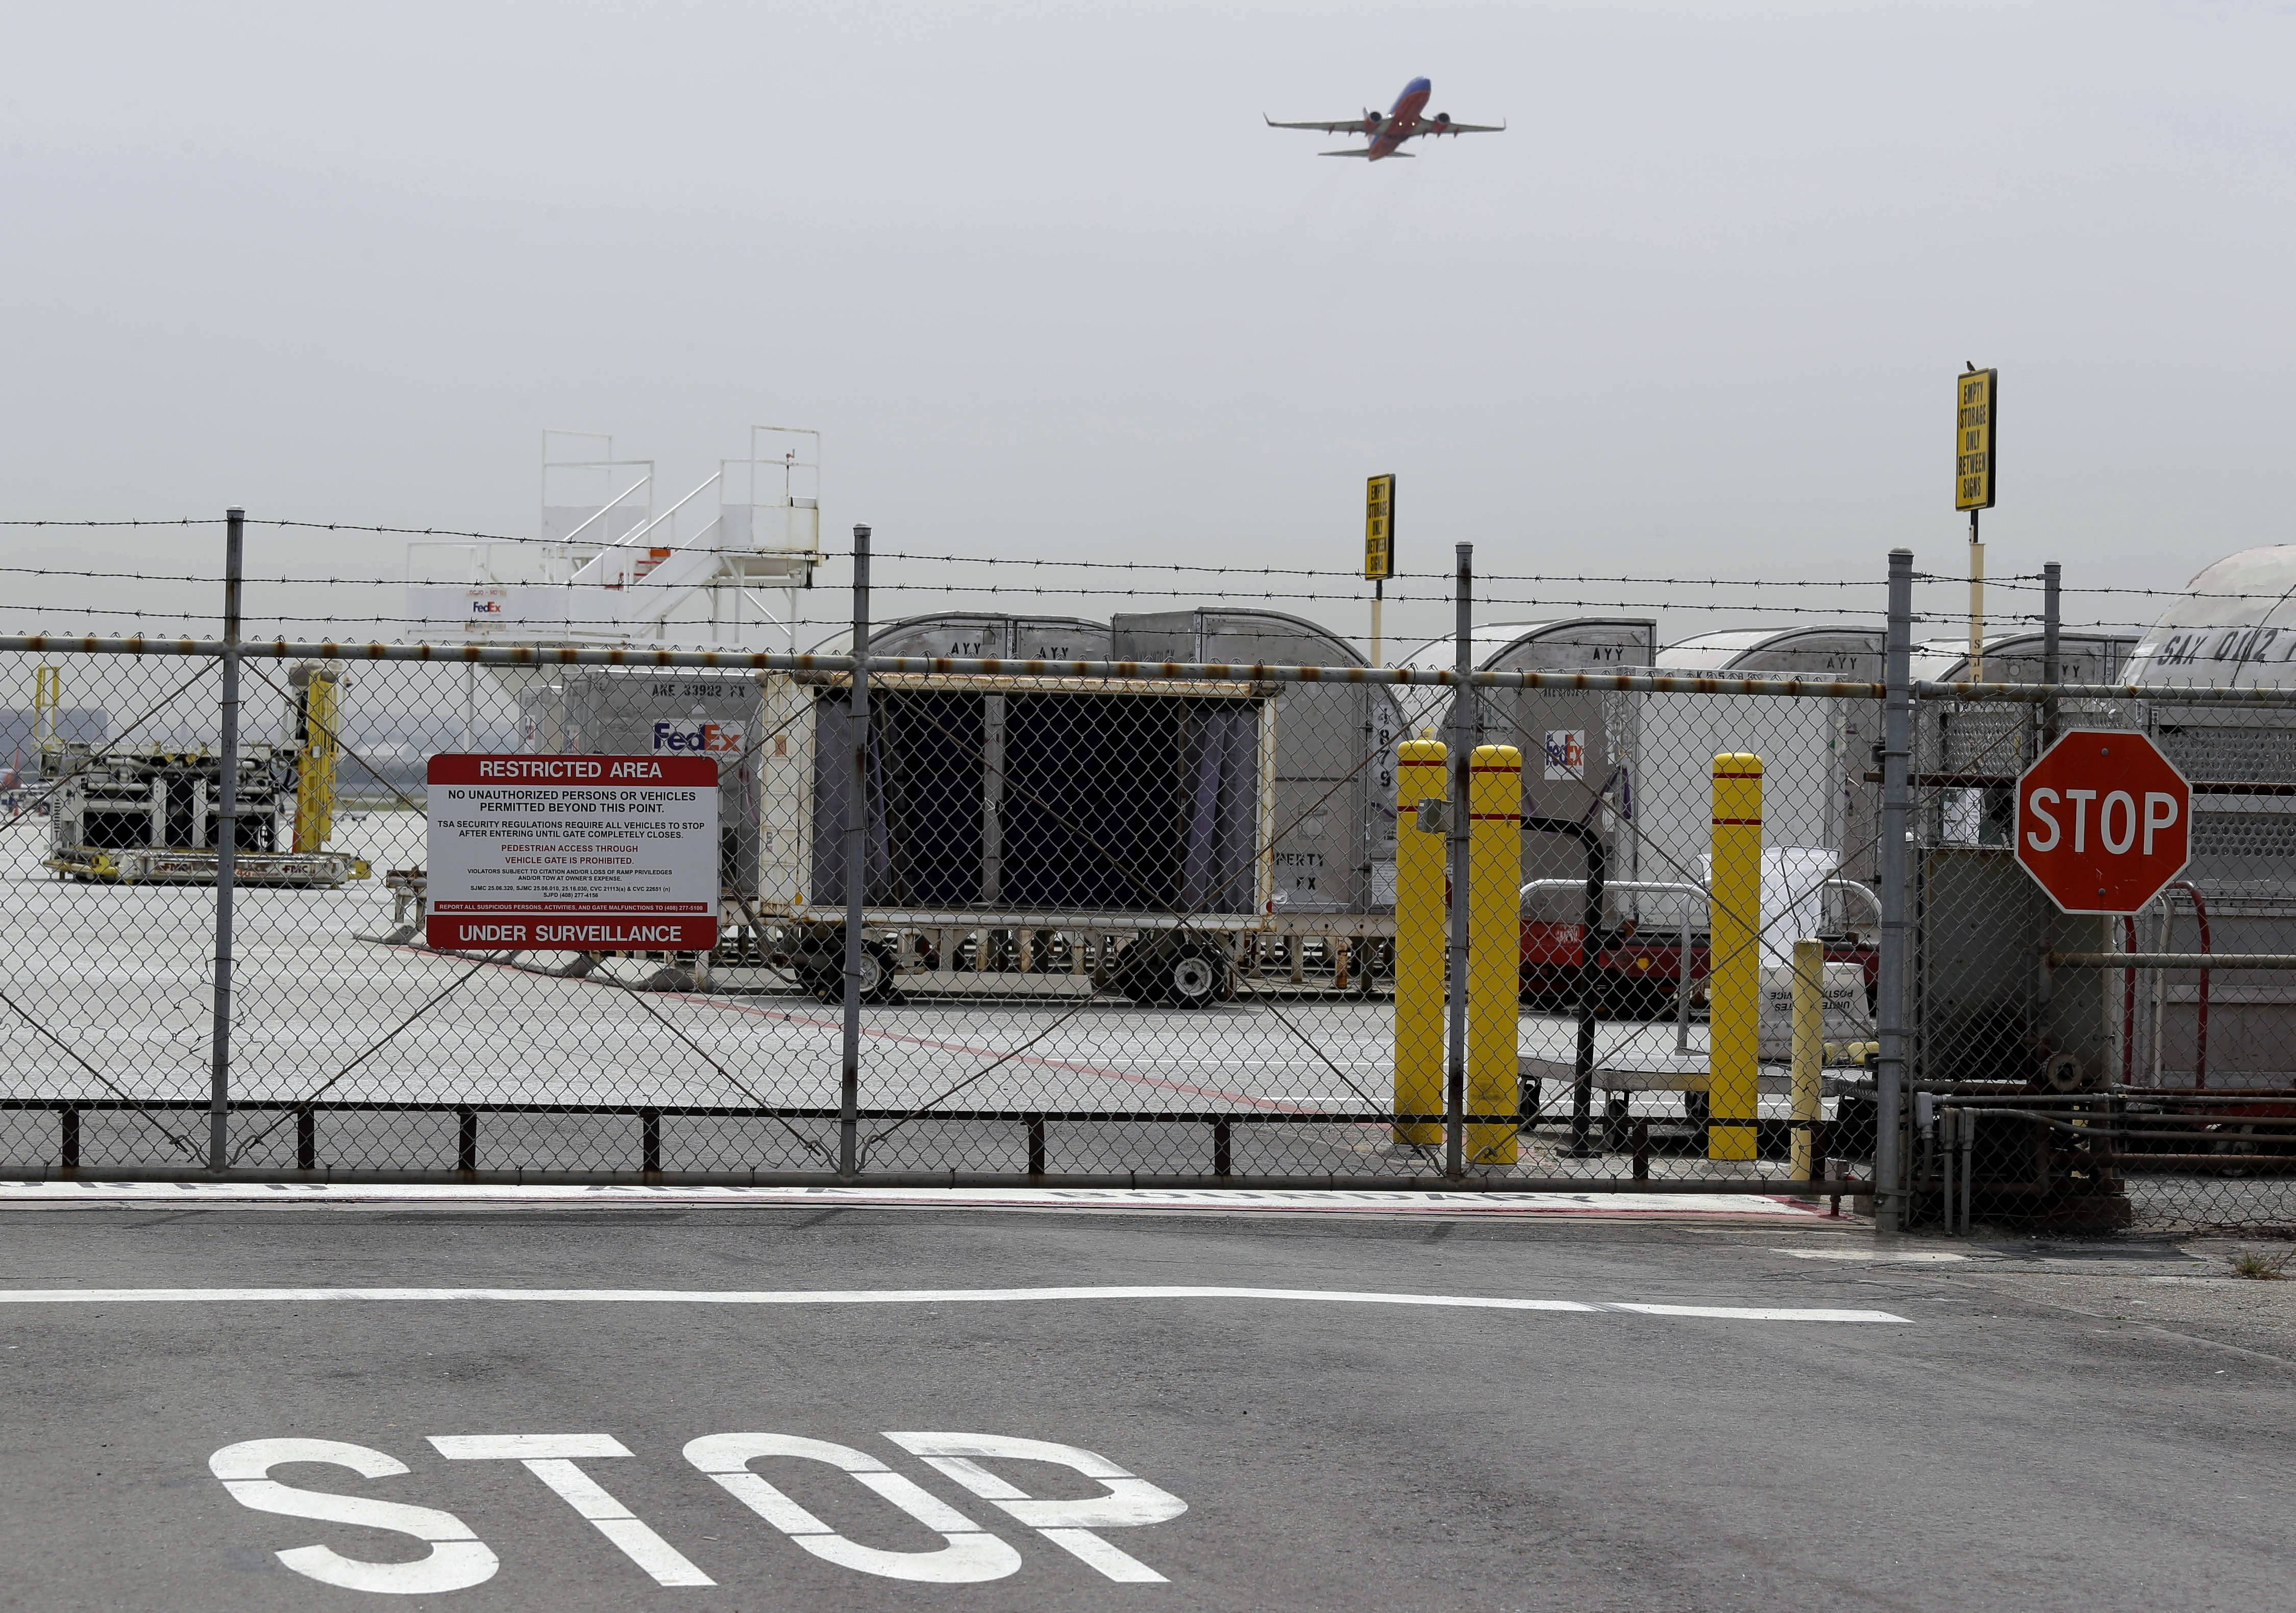 A 15-year-old stowaway who survived a flight over the Pacific in a jet's wheel well spent seven hours undetected in what is supposed to be a highly secure area of San Jose International Airport before the flight departed, according to an official briefed on the investigation.